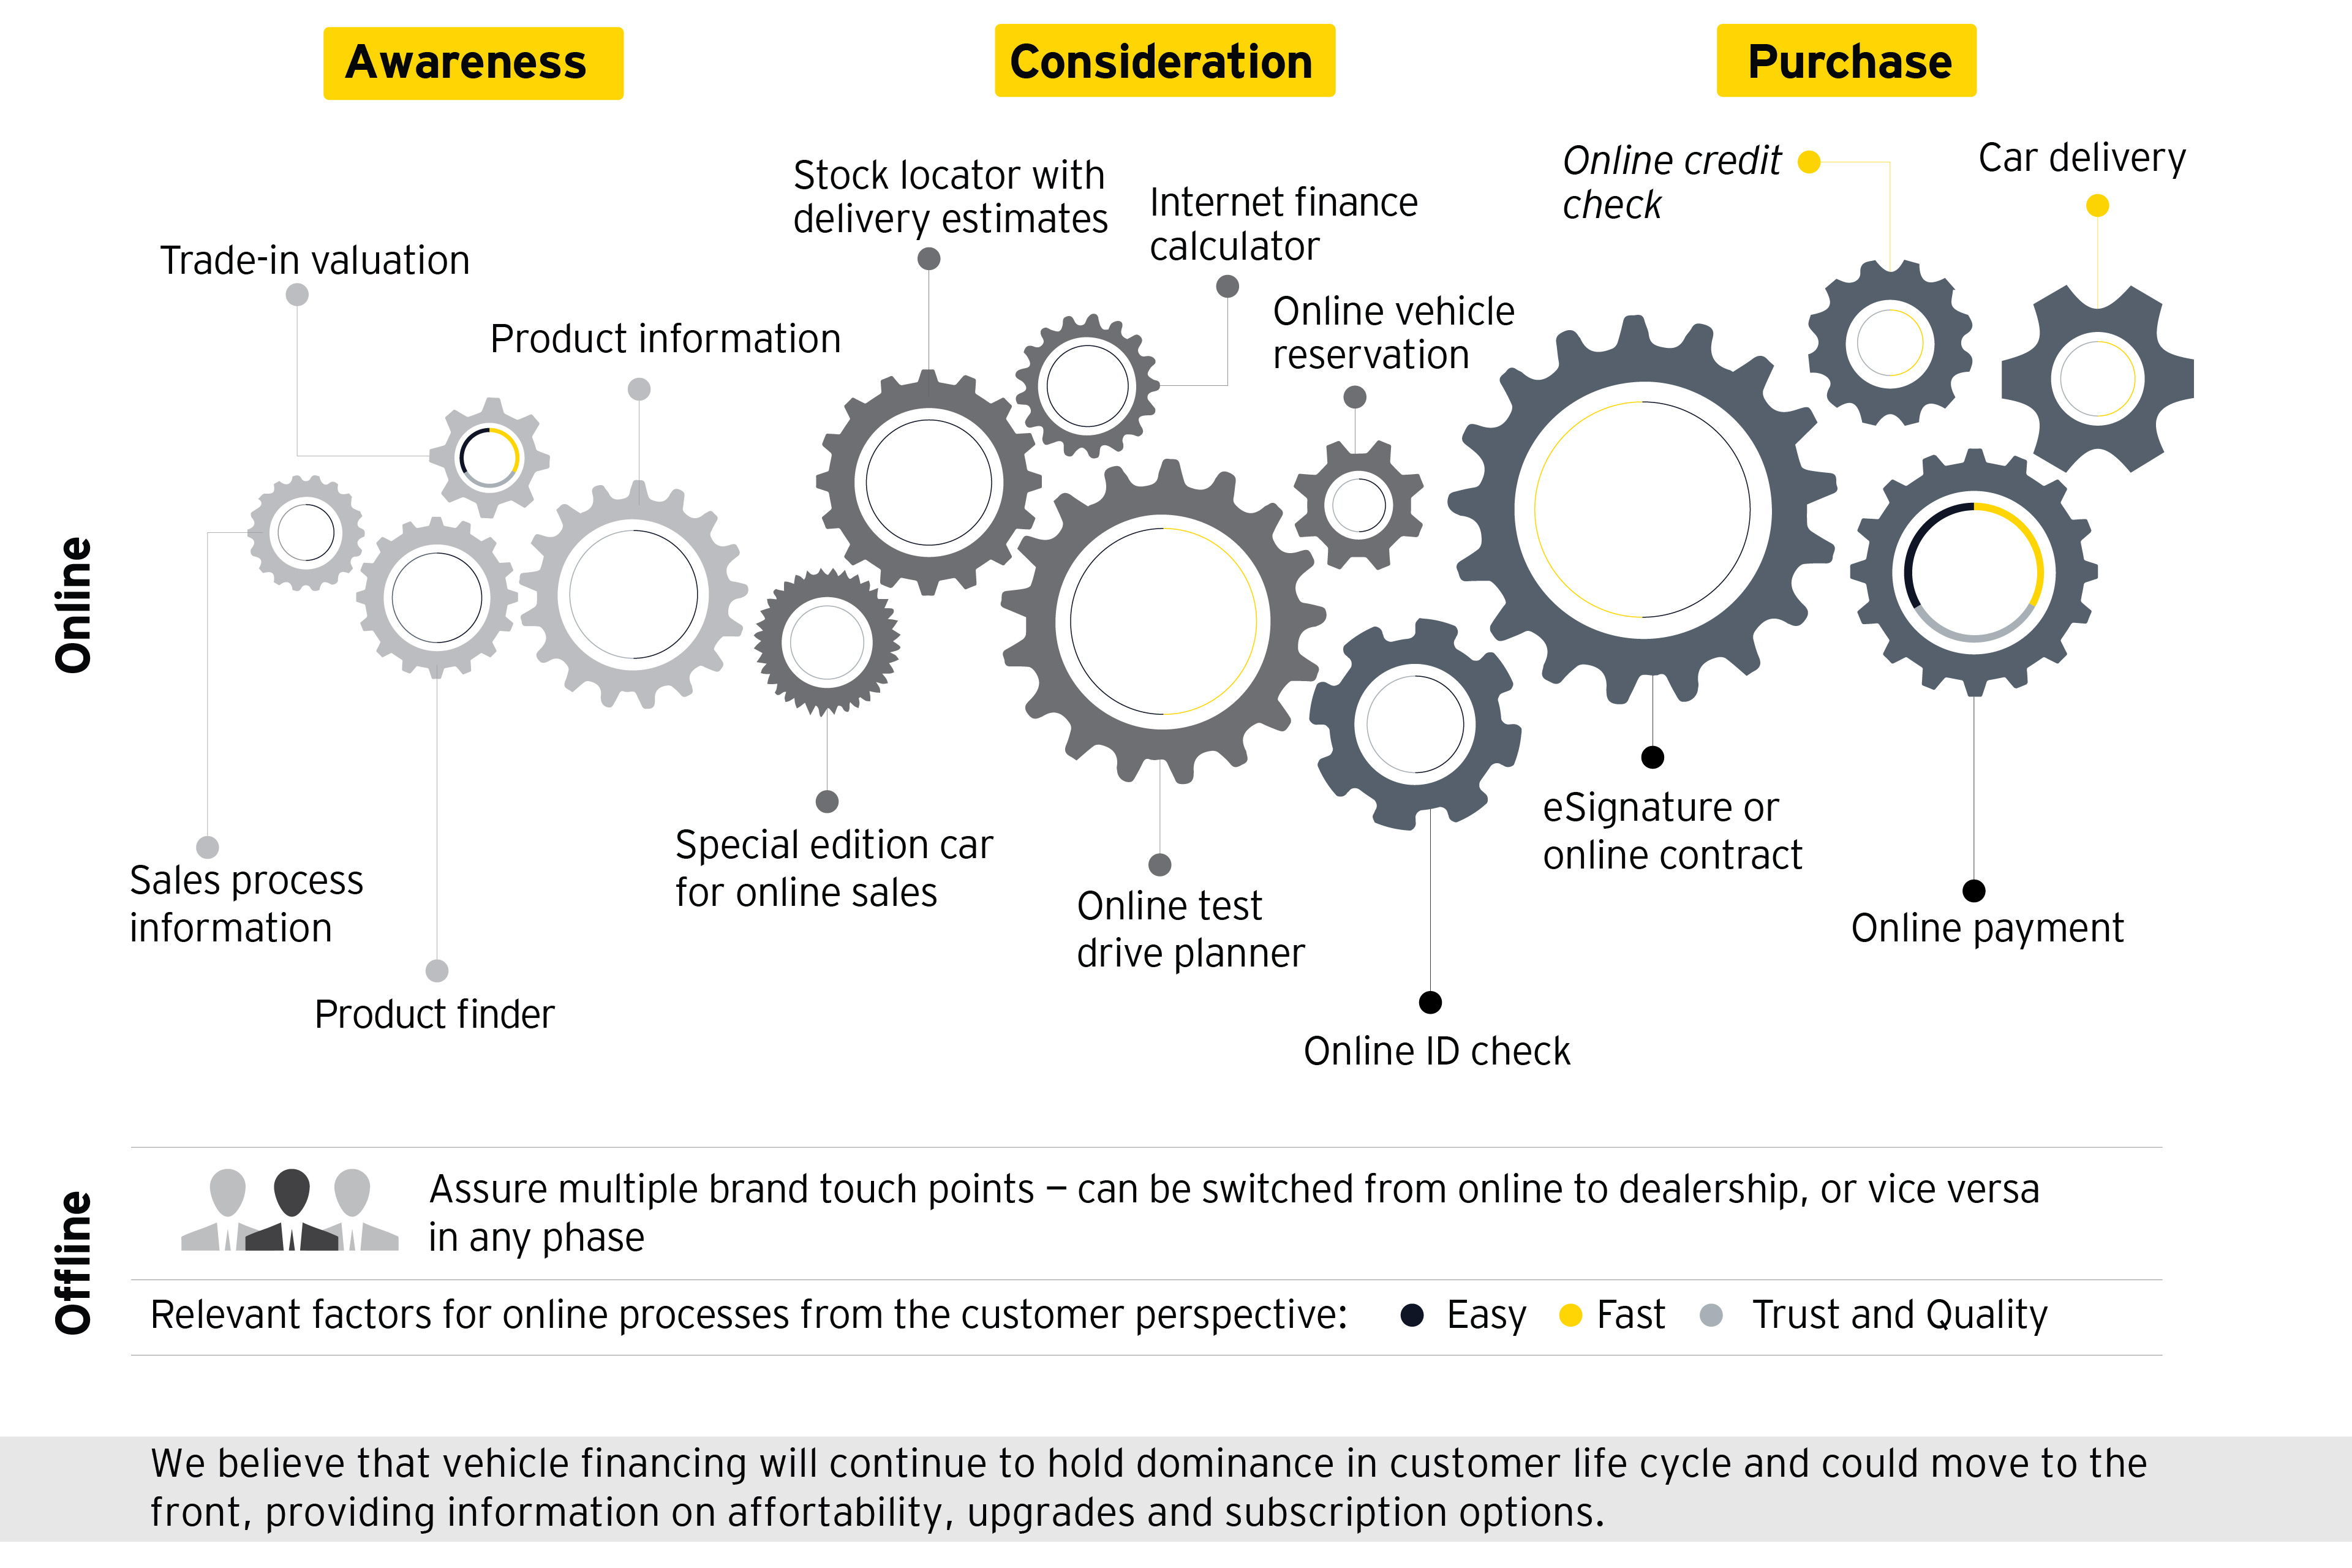 Digital Transformation Trends In The Automotive Industry